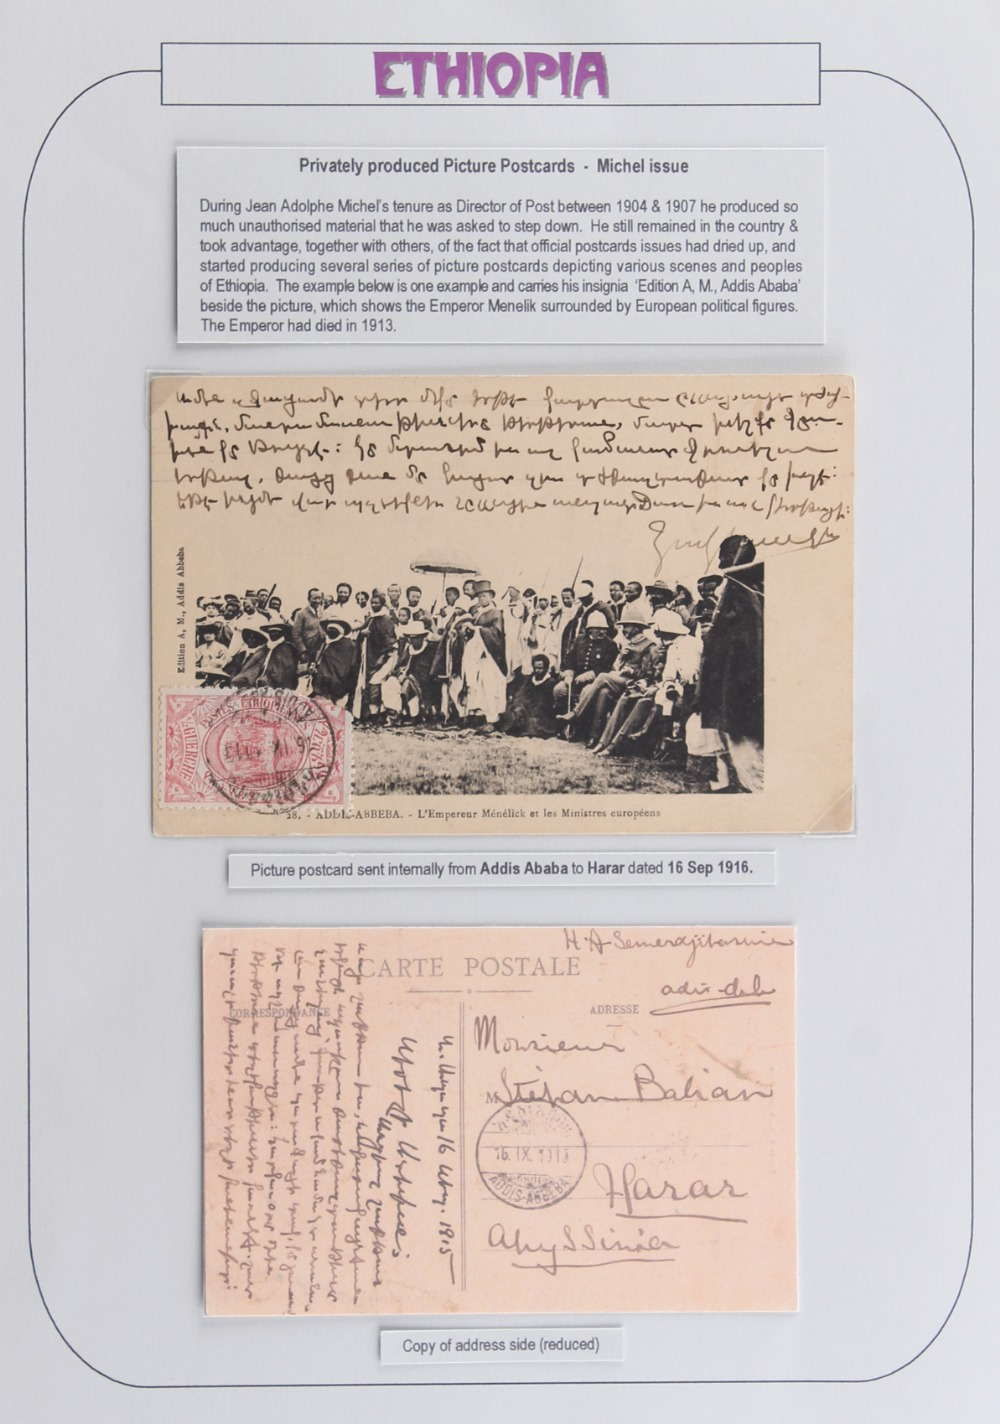 The Basil Lewis (1927-2019) collection of stamps - Ethiopia: 1909-31 illustrated postcards used with